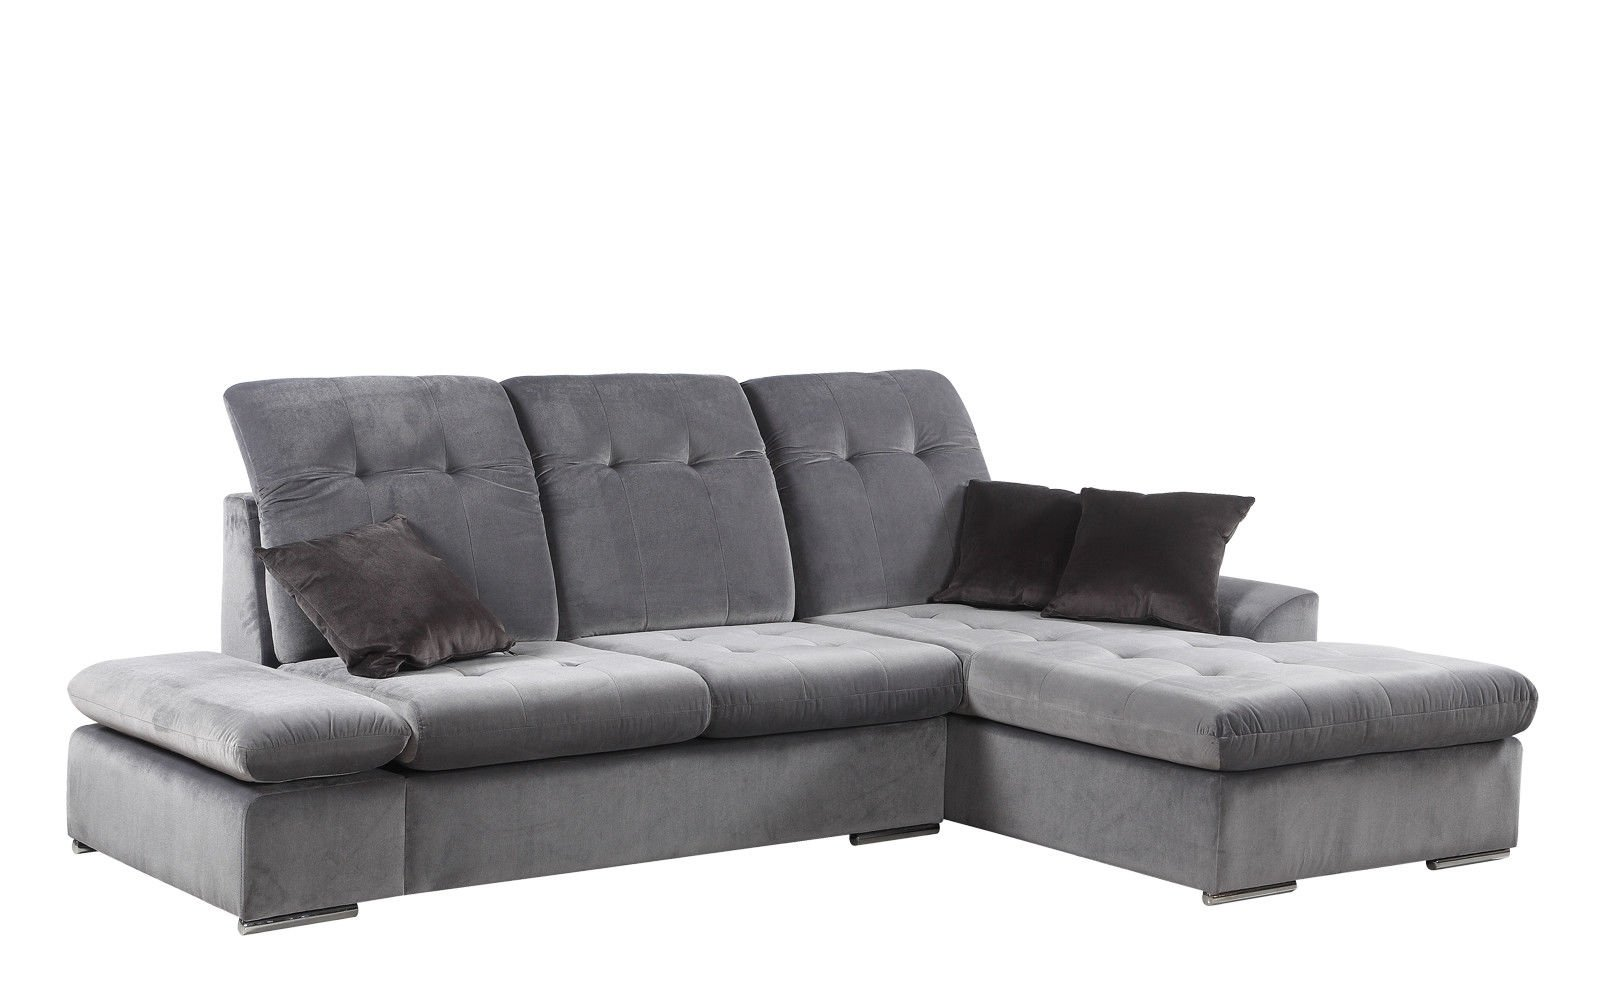 modern microfiber grey sectional sofa small rooms ideas with chaise l shape